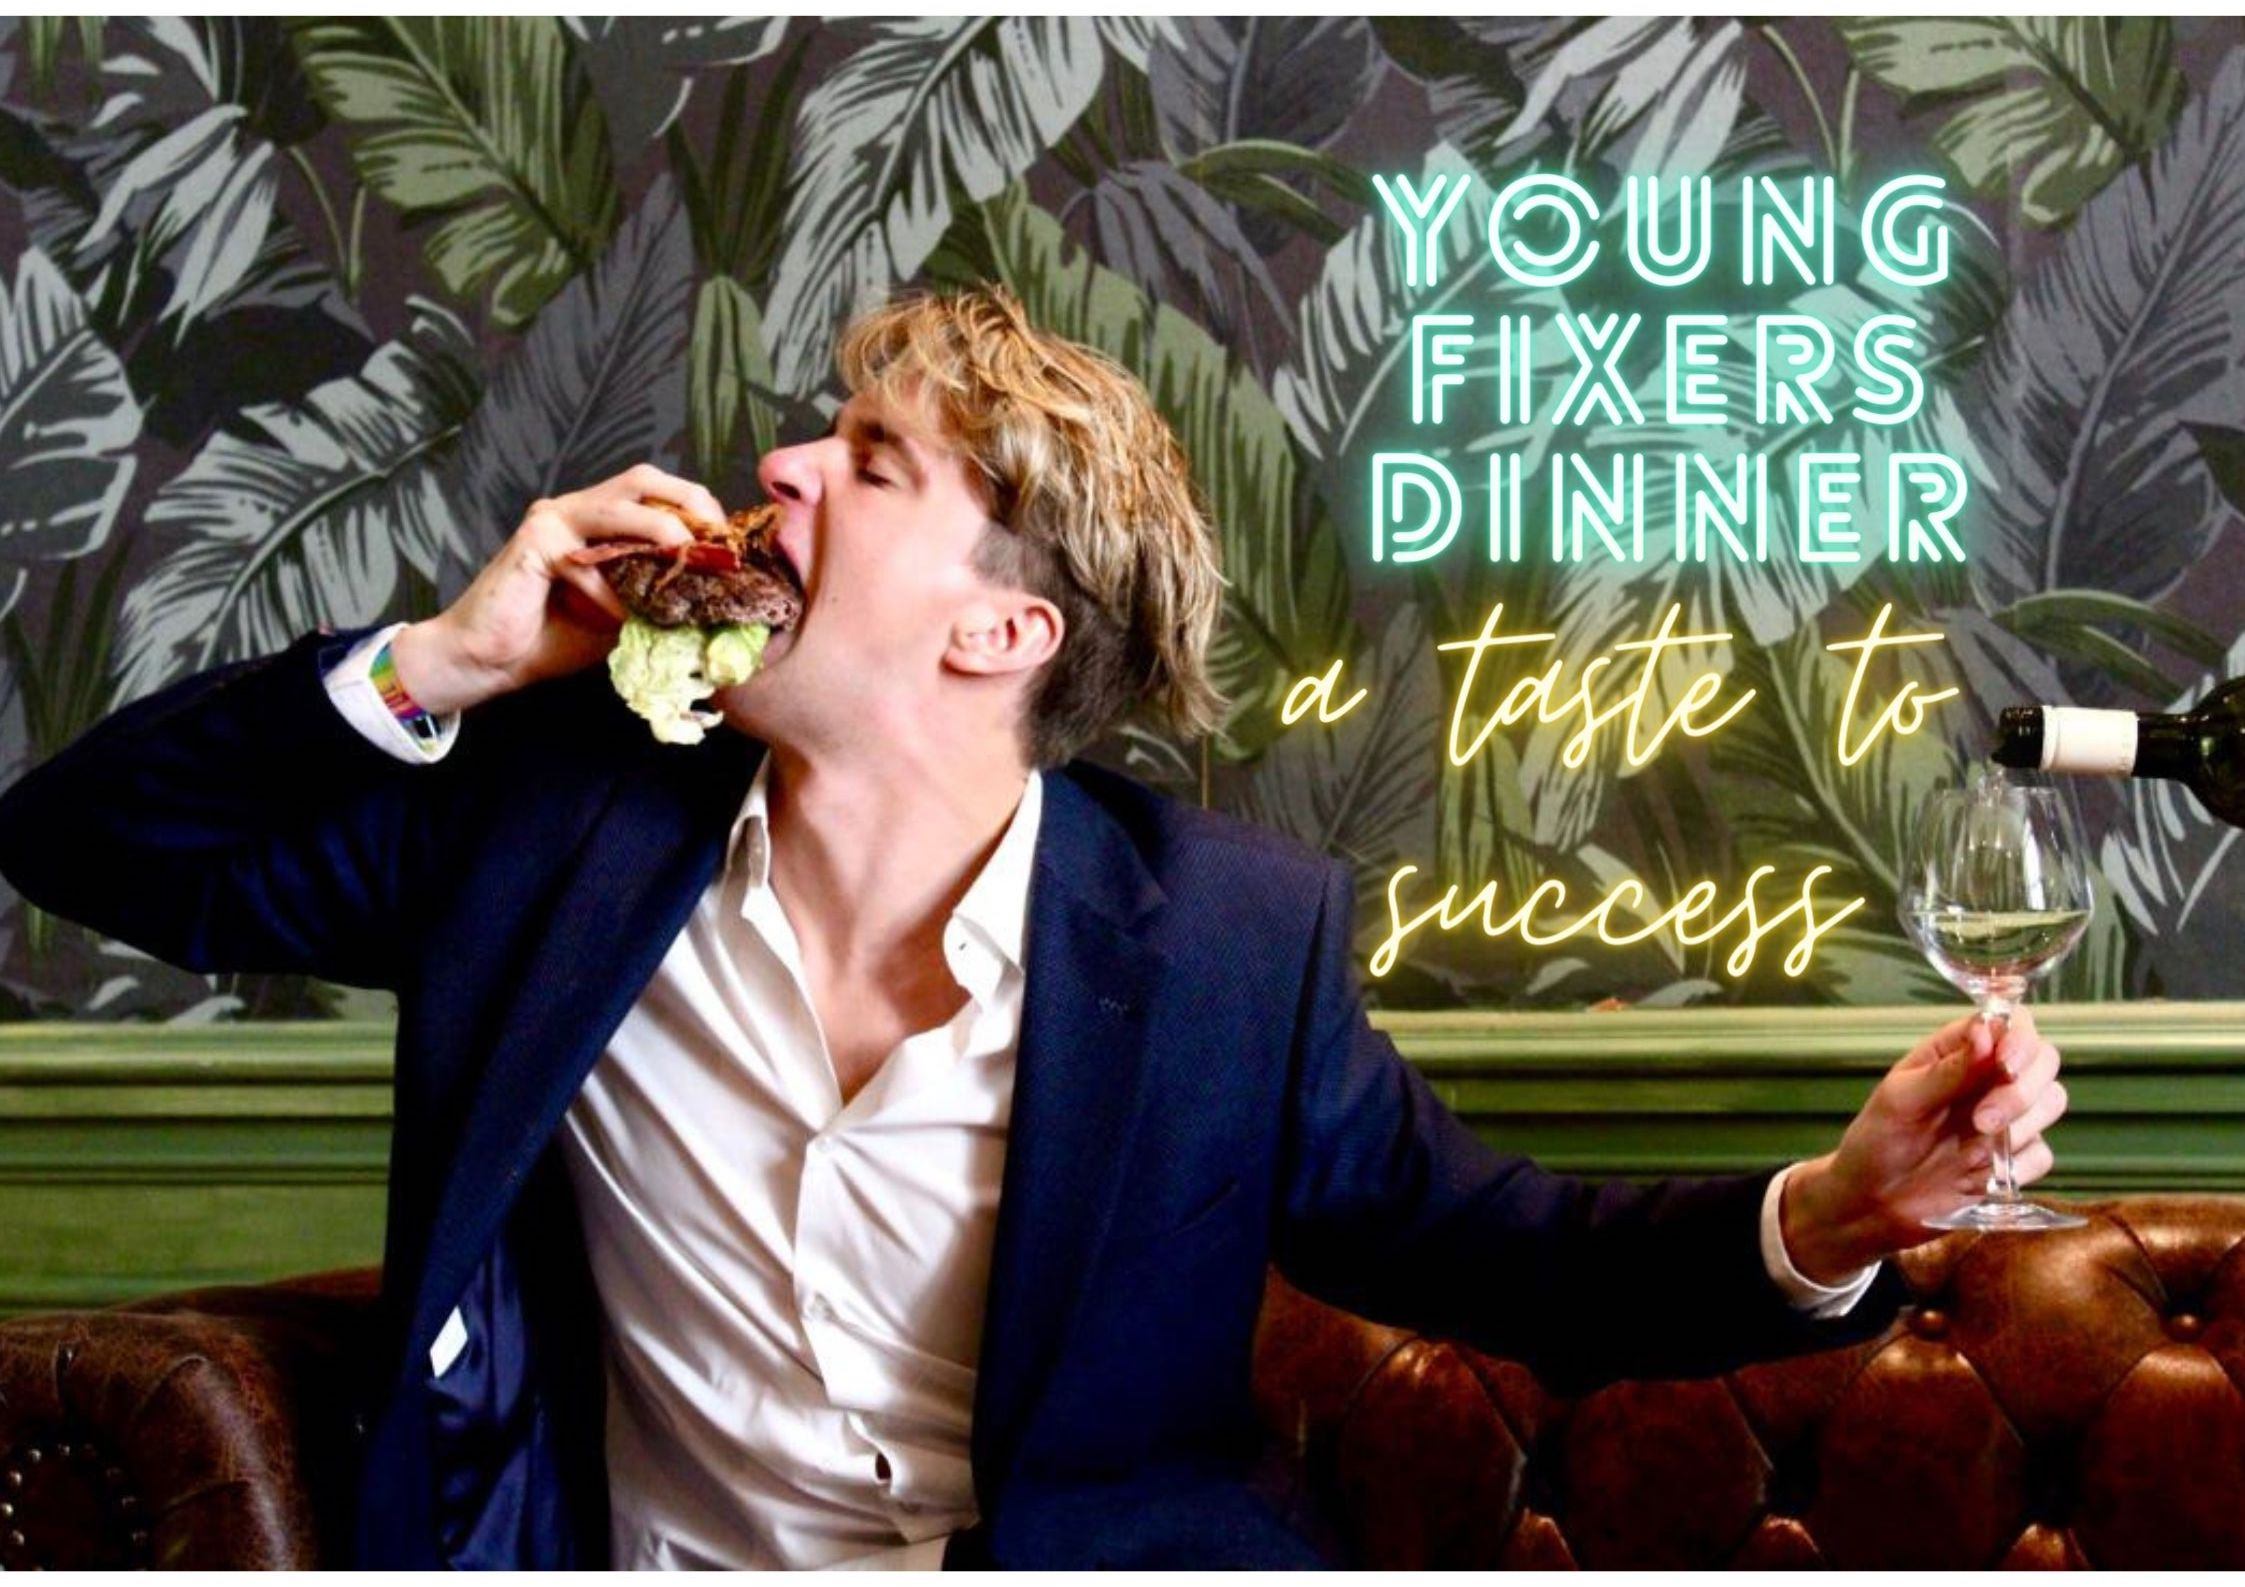 Young Fixers Dinner